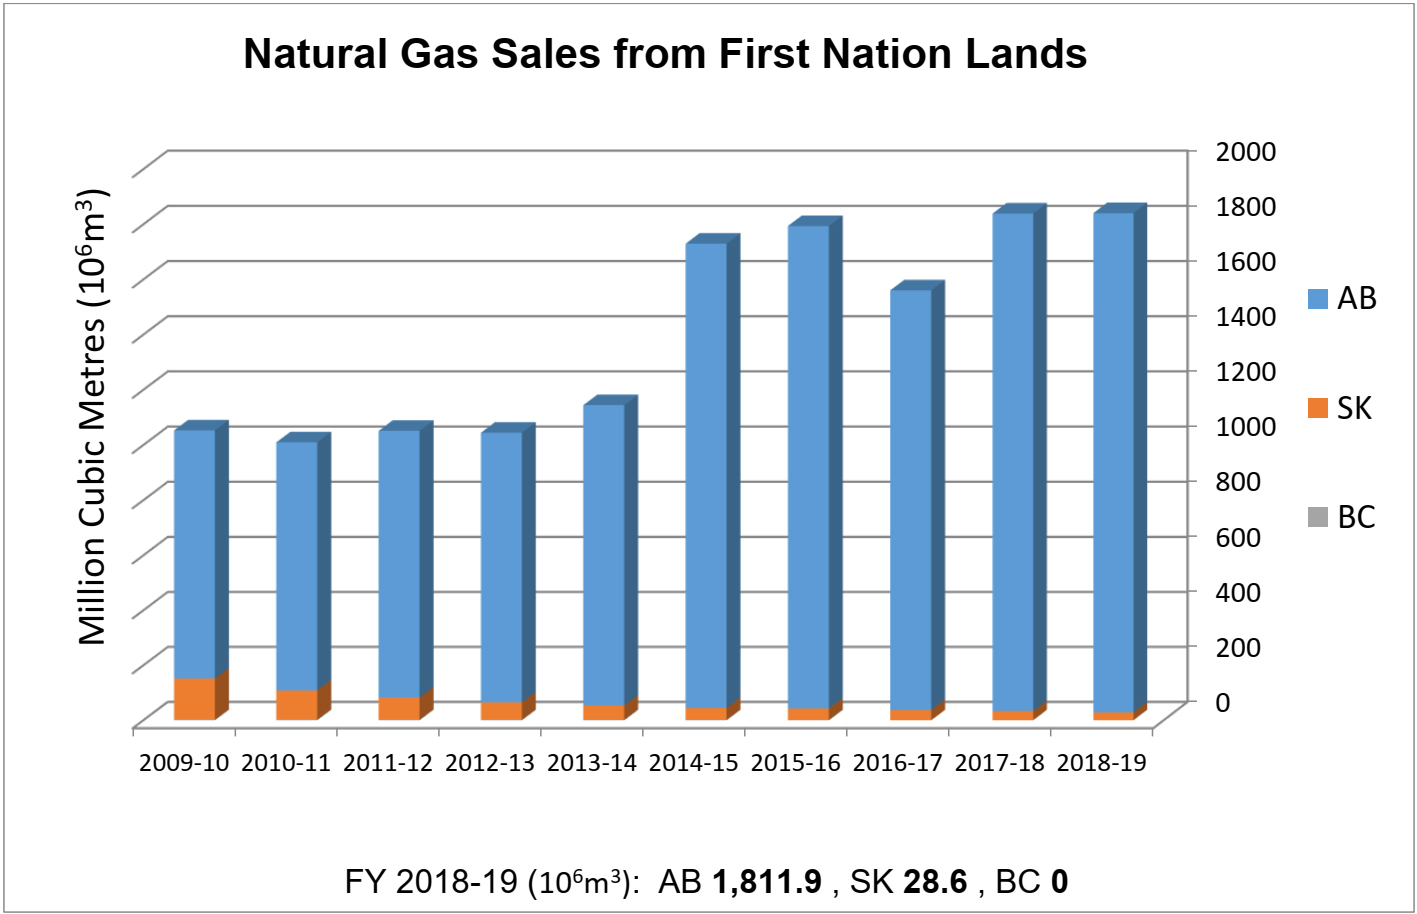 Natural Gas Sales from First Nation Lands